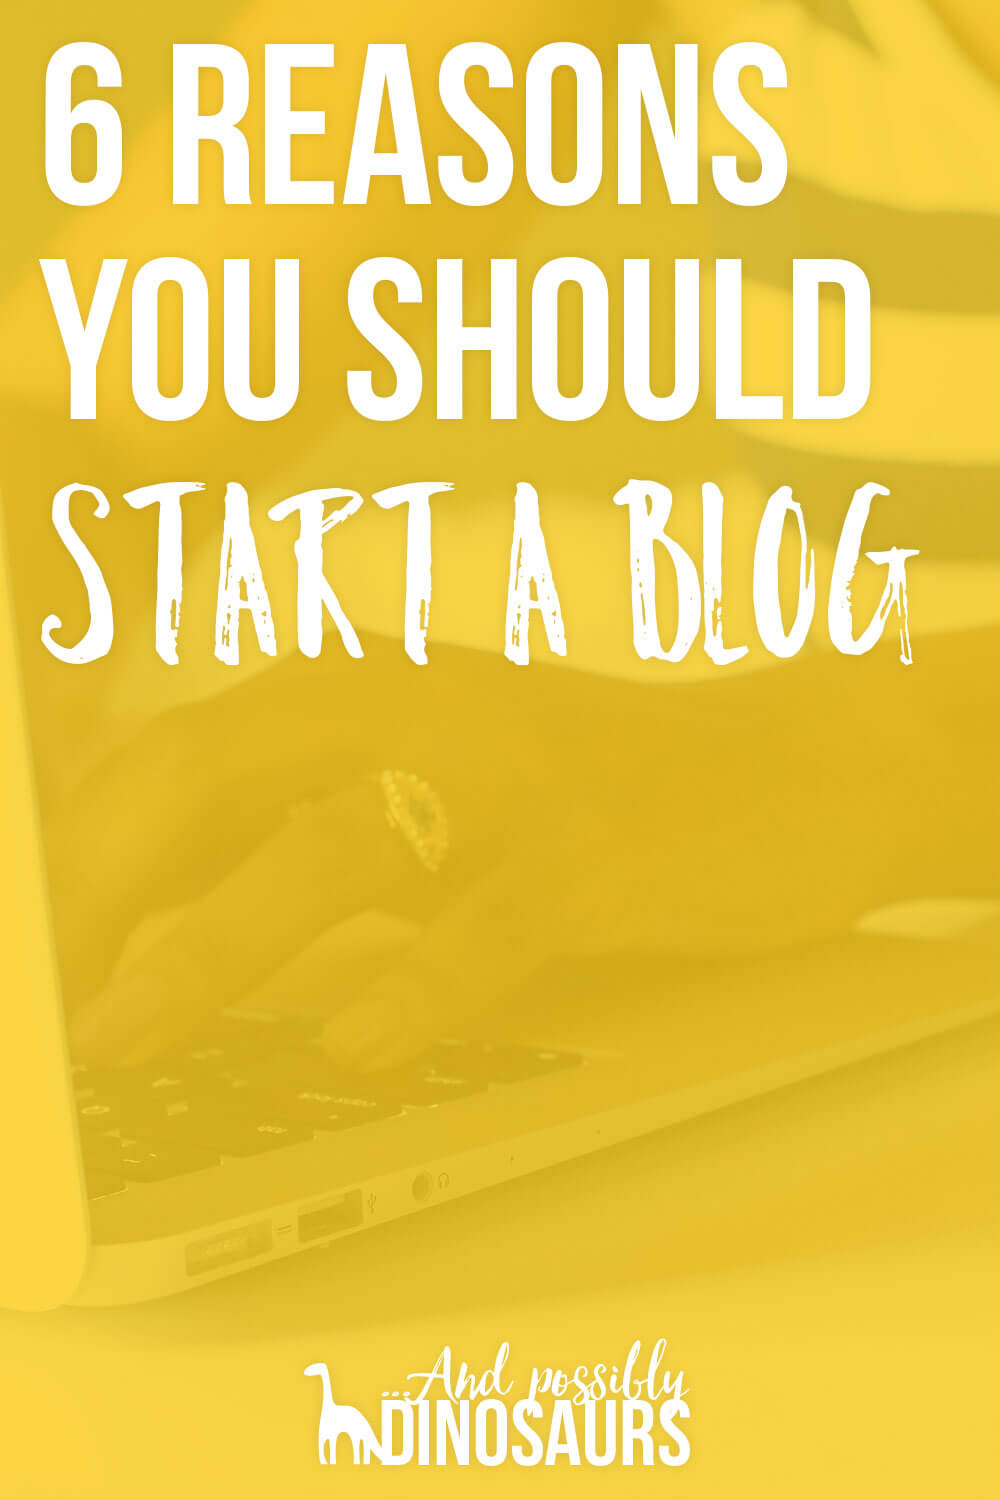 You've been thinking you should start a blog. But are you ready for it? Here are 6 reasons you should take the leap and start a blog!